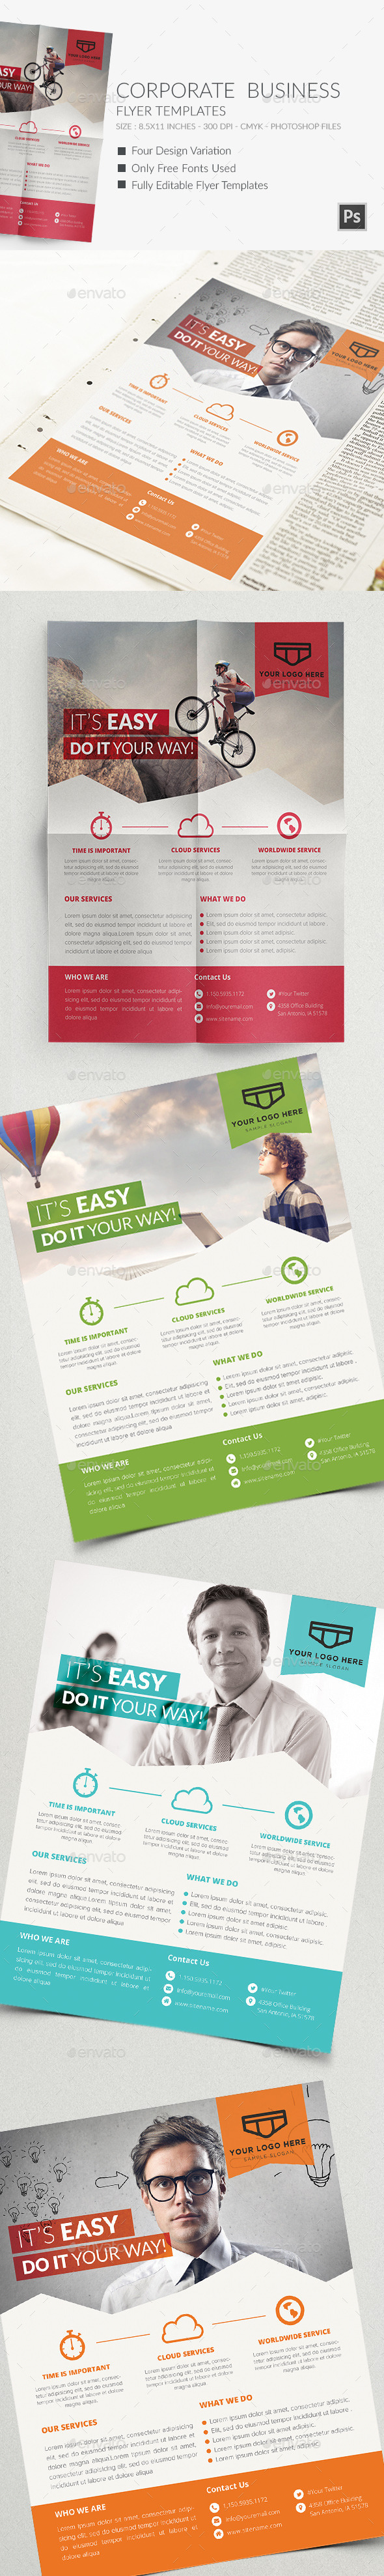 Corporate Business Flyer Templates 2 - Commerce Flyers